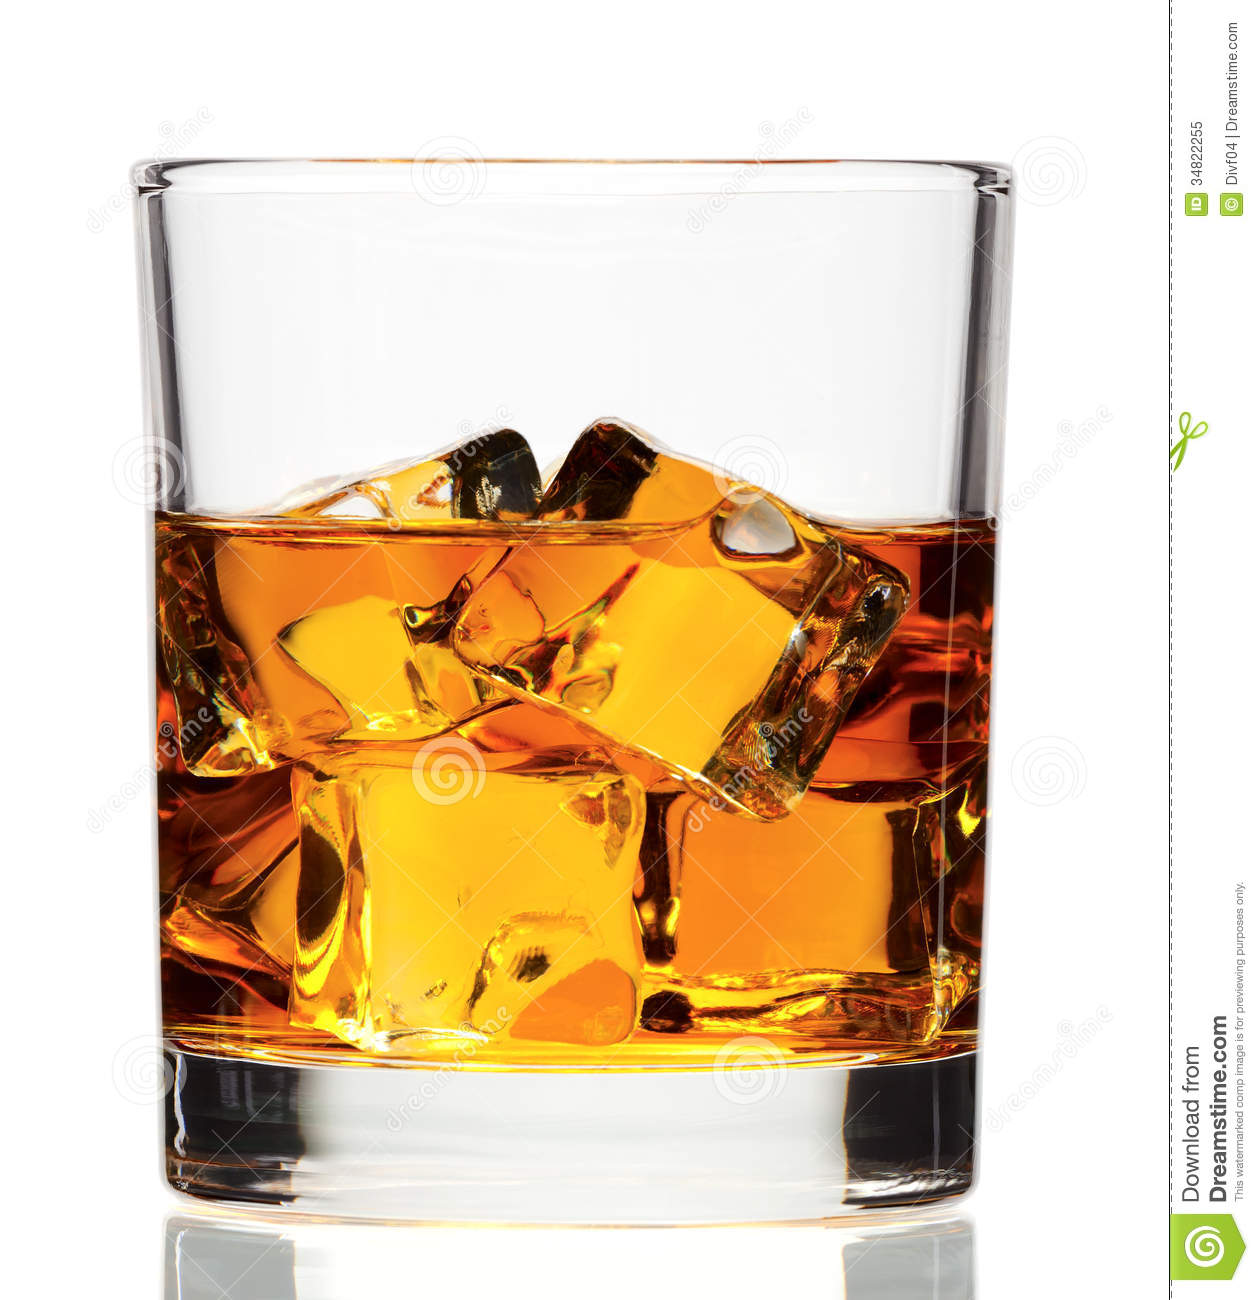 Whiskey on the rock on white background in studio with clipping path.